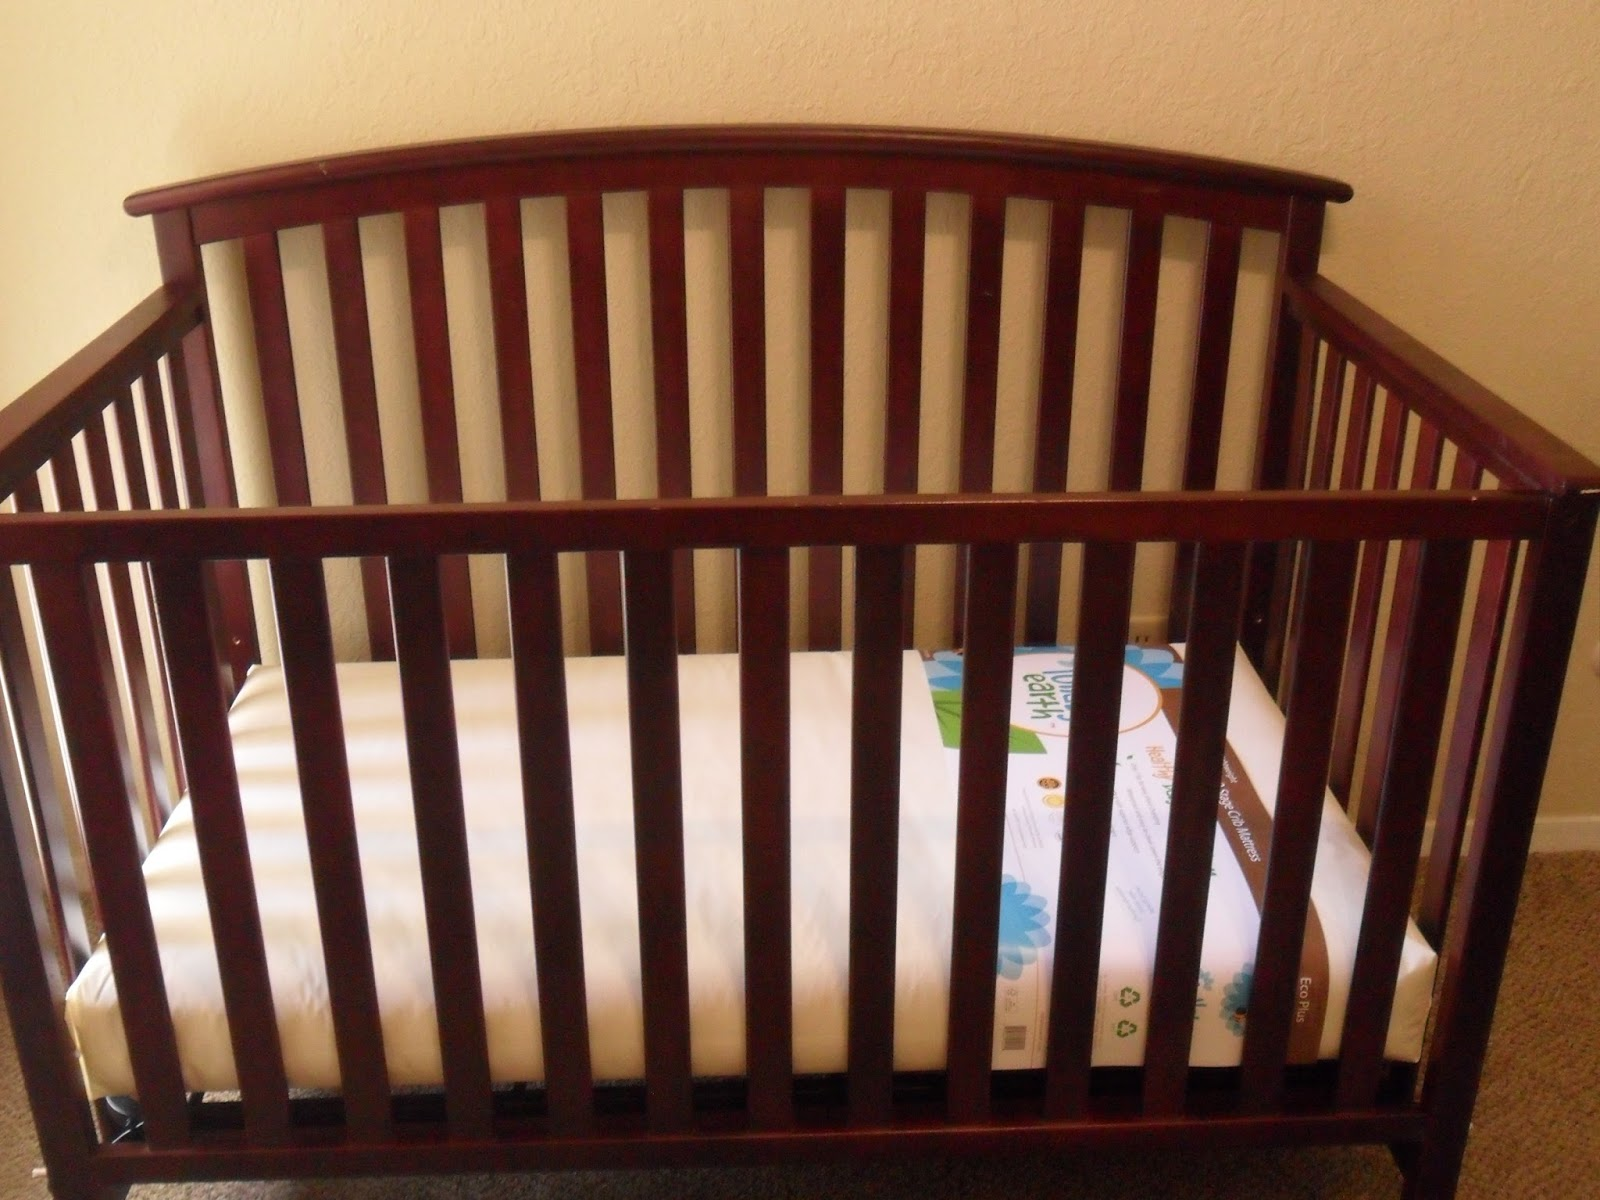 Sweet dreams with Lullaby Earth Crib Mattress. Review